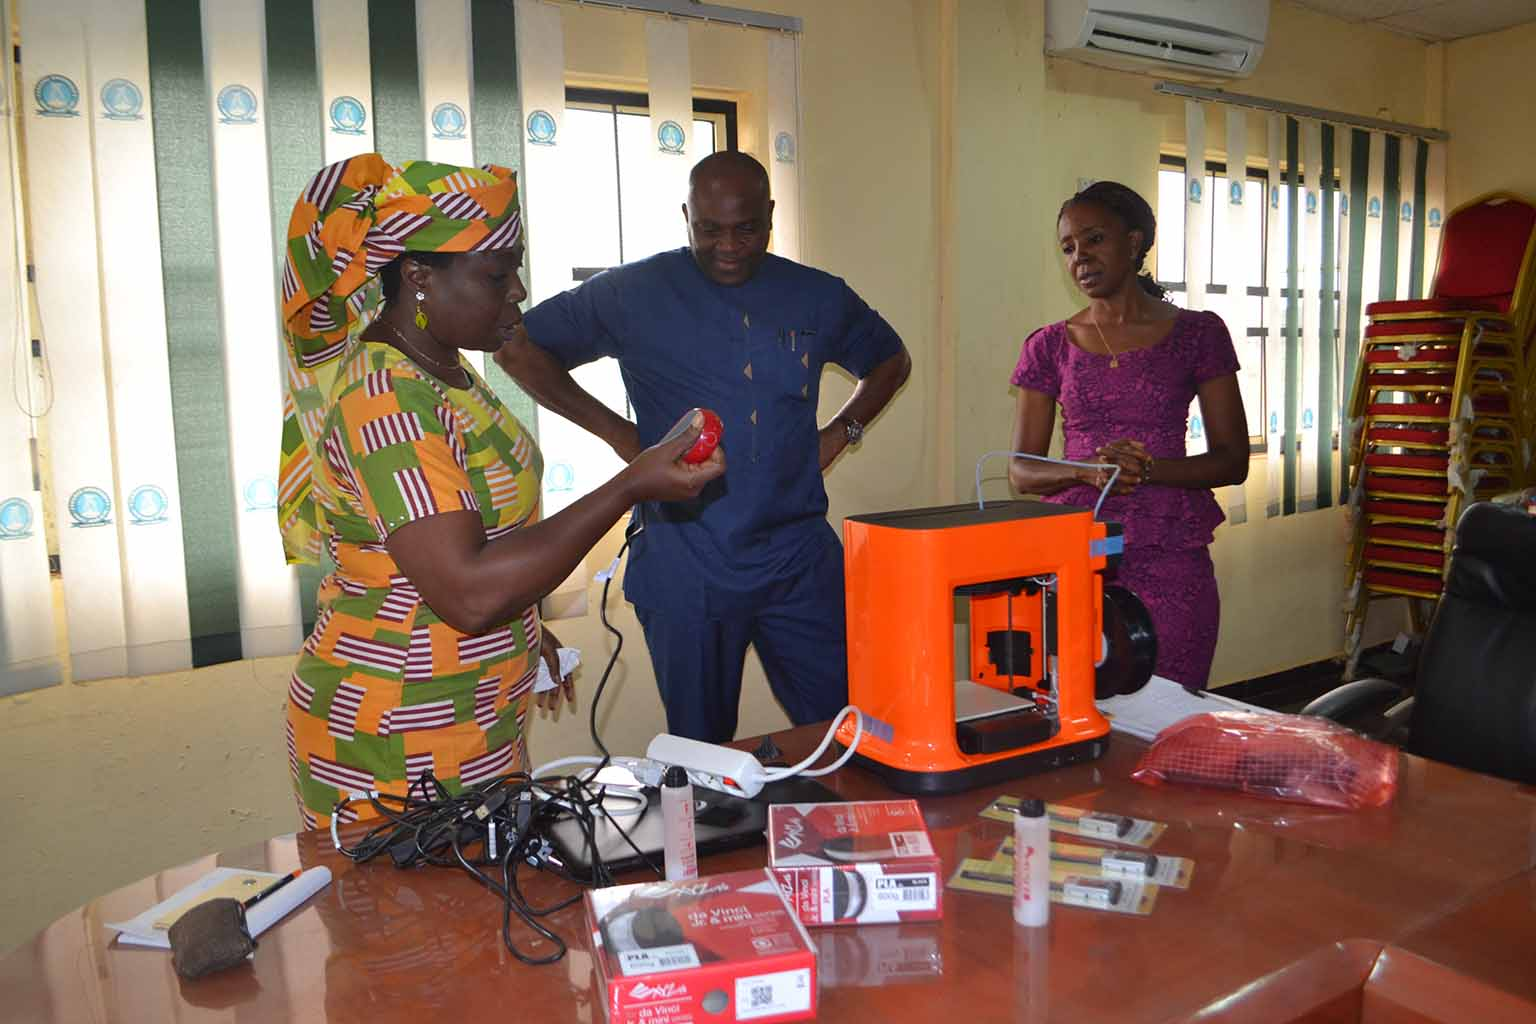 Prof G.M.T Emezue is explaining the functions of the printer to the Vice Chancellor, Prof Chinedu Nwajiuba, while Ms Chiaka Nnodi watches.